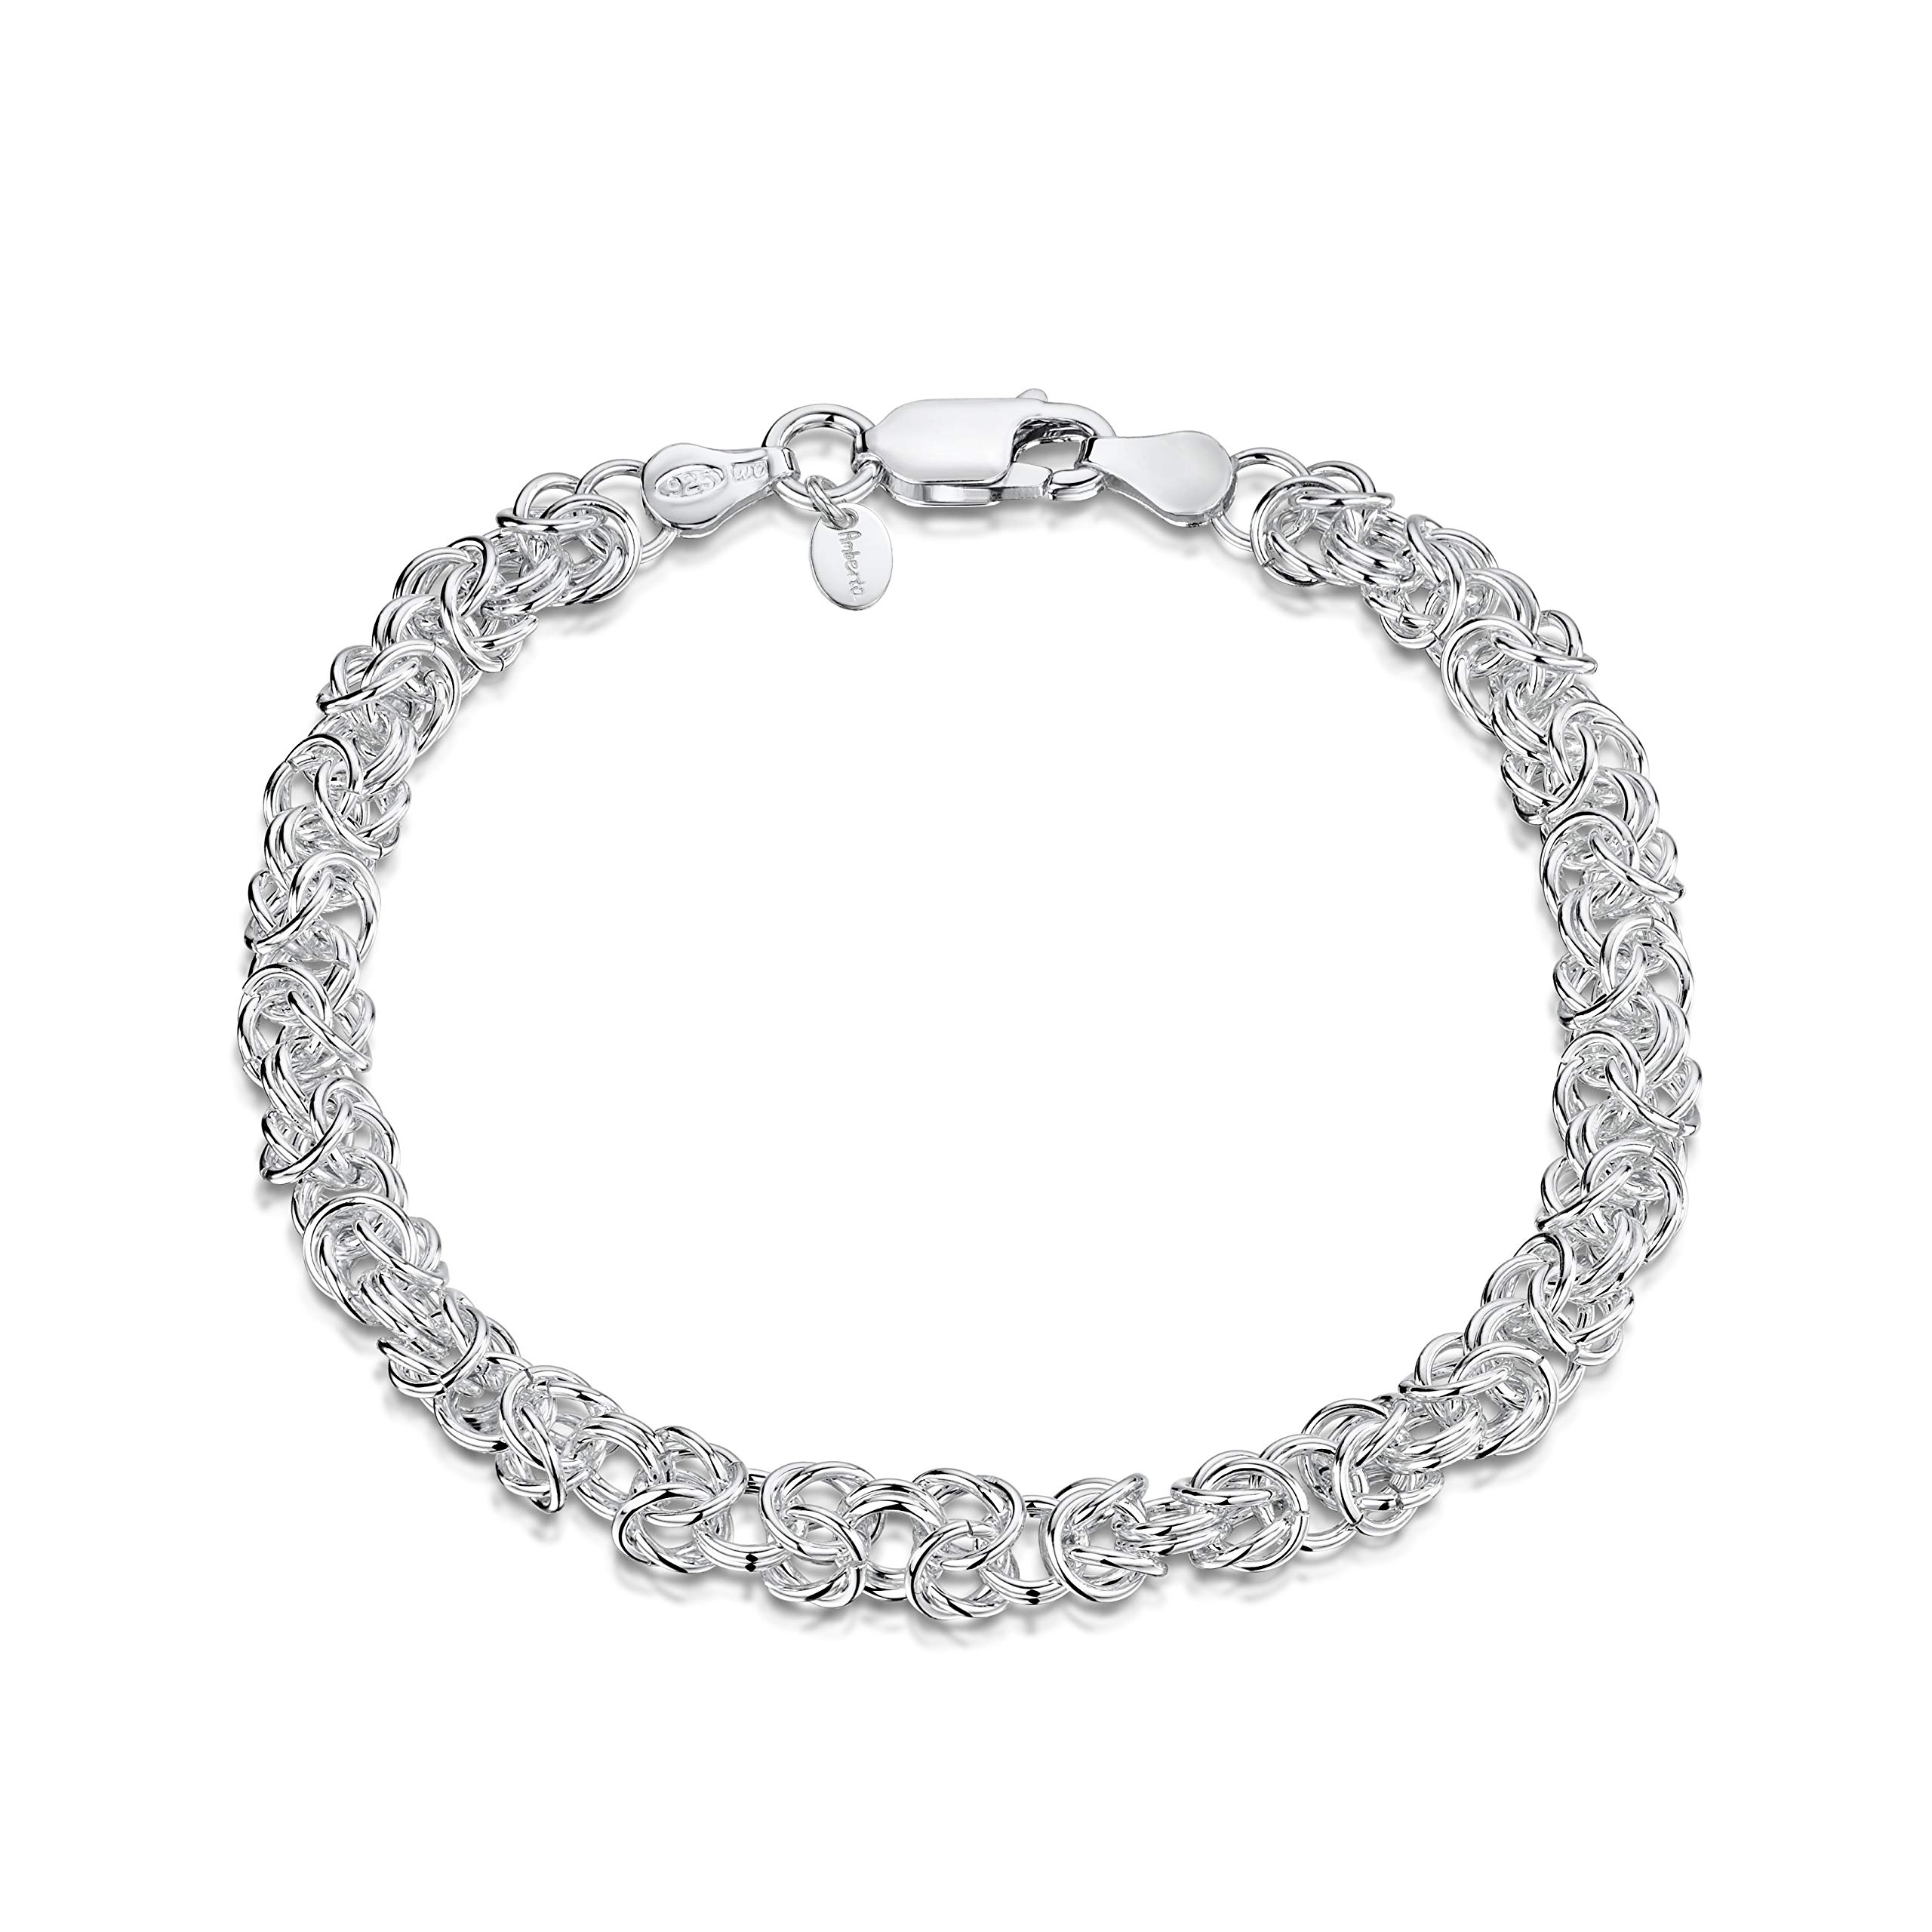 Fashion Jewelry Discreet Bracelet From Ankle To Suit The PeopleS Convenience Jewelry & Watches